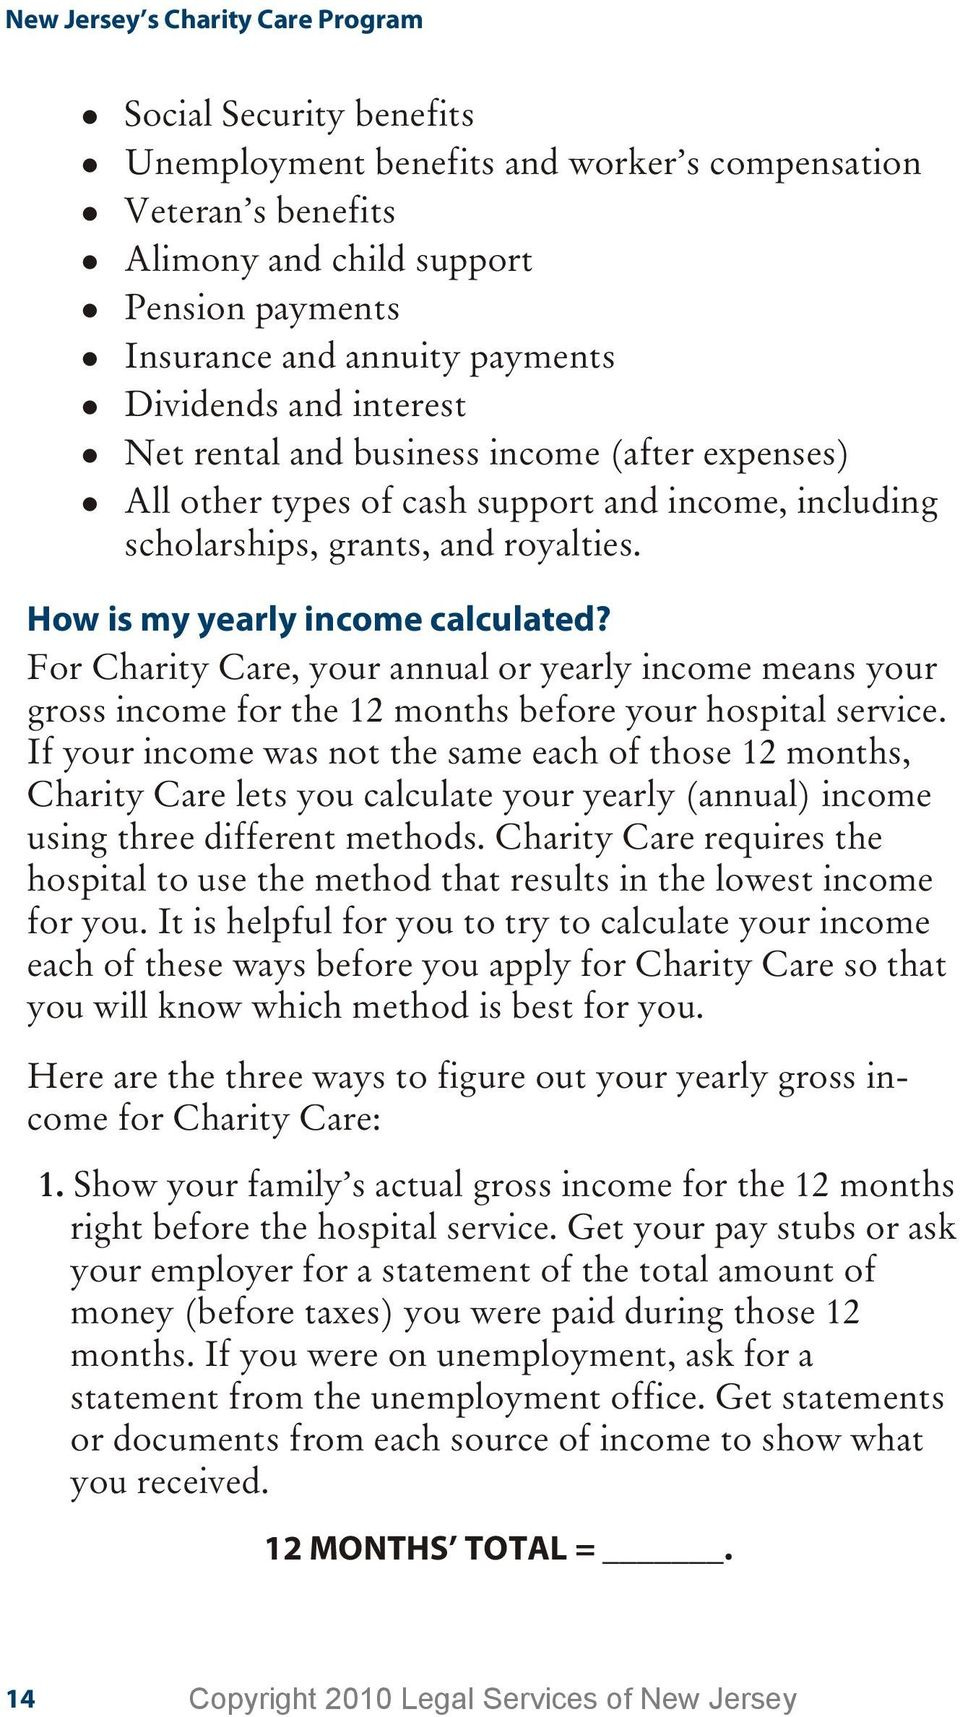 For Char ity Care, your an nual or yearly in come means your gross in come for the 12 months be fore your hos pi tal ser vice.